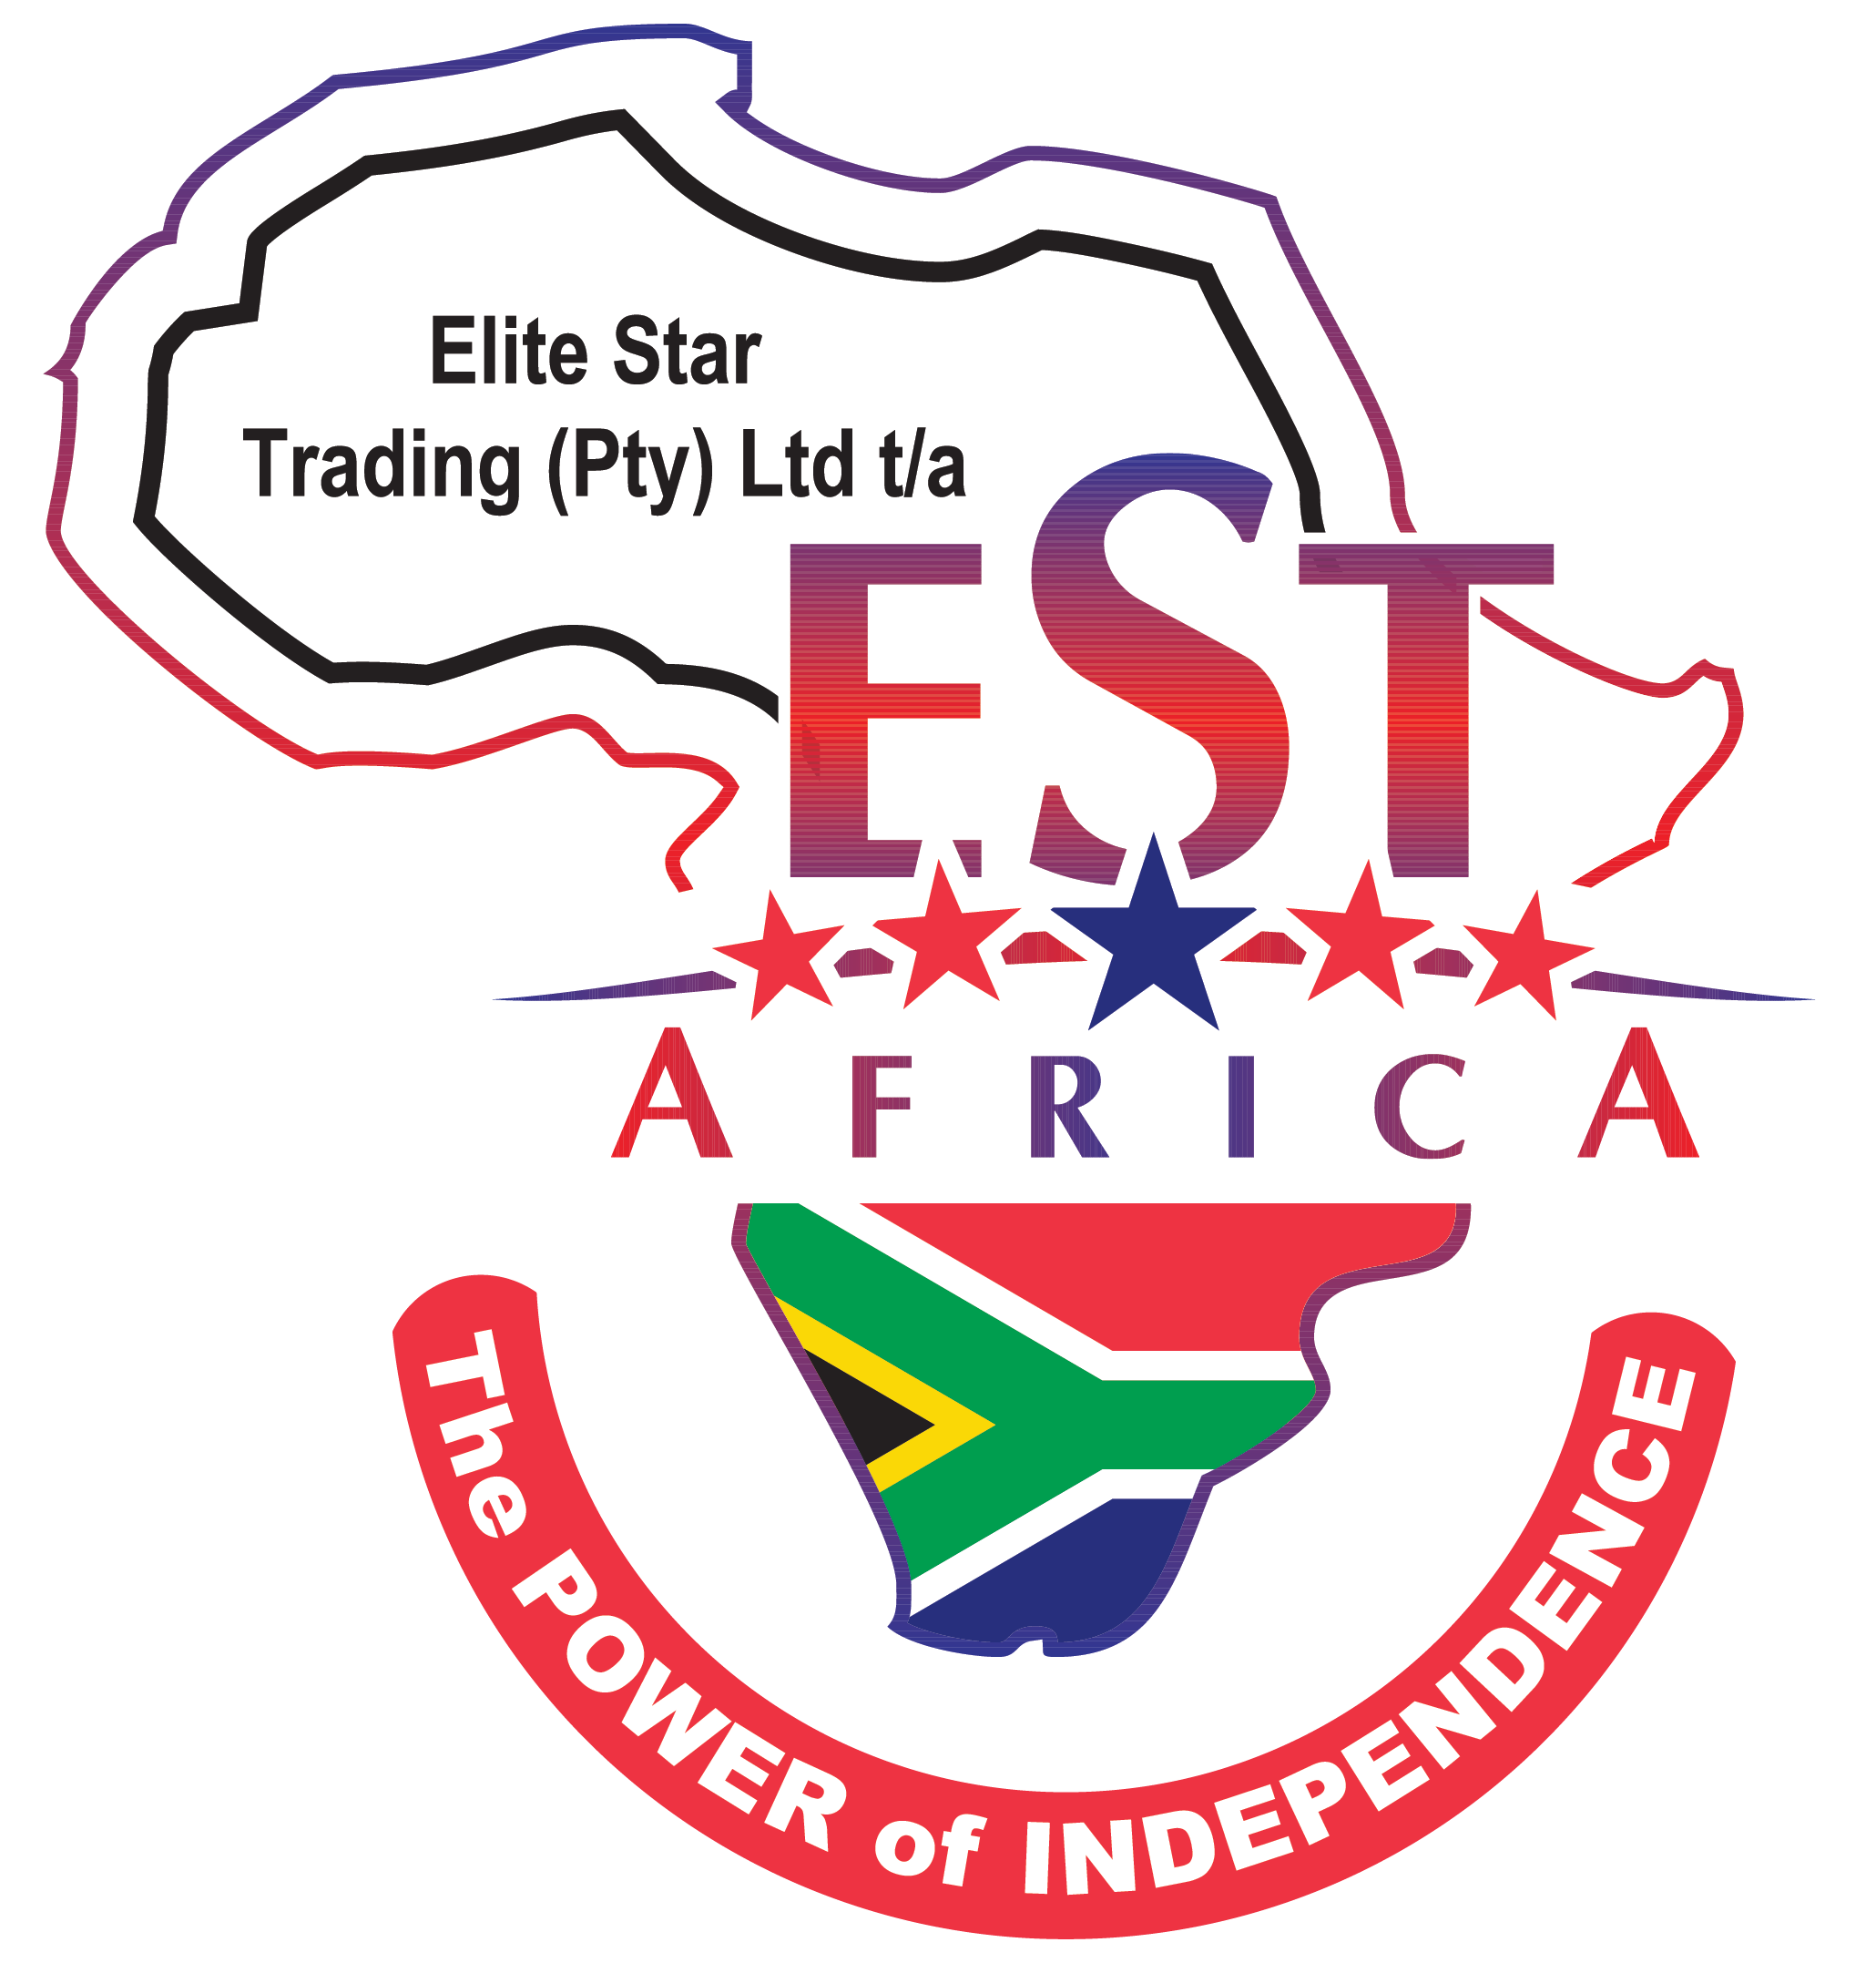 Home - Elite Star Trading | The Power Of Independence - 2019